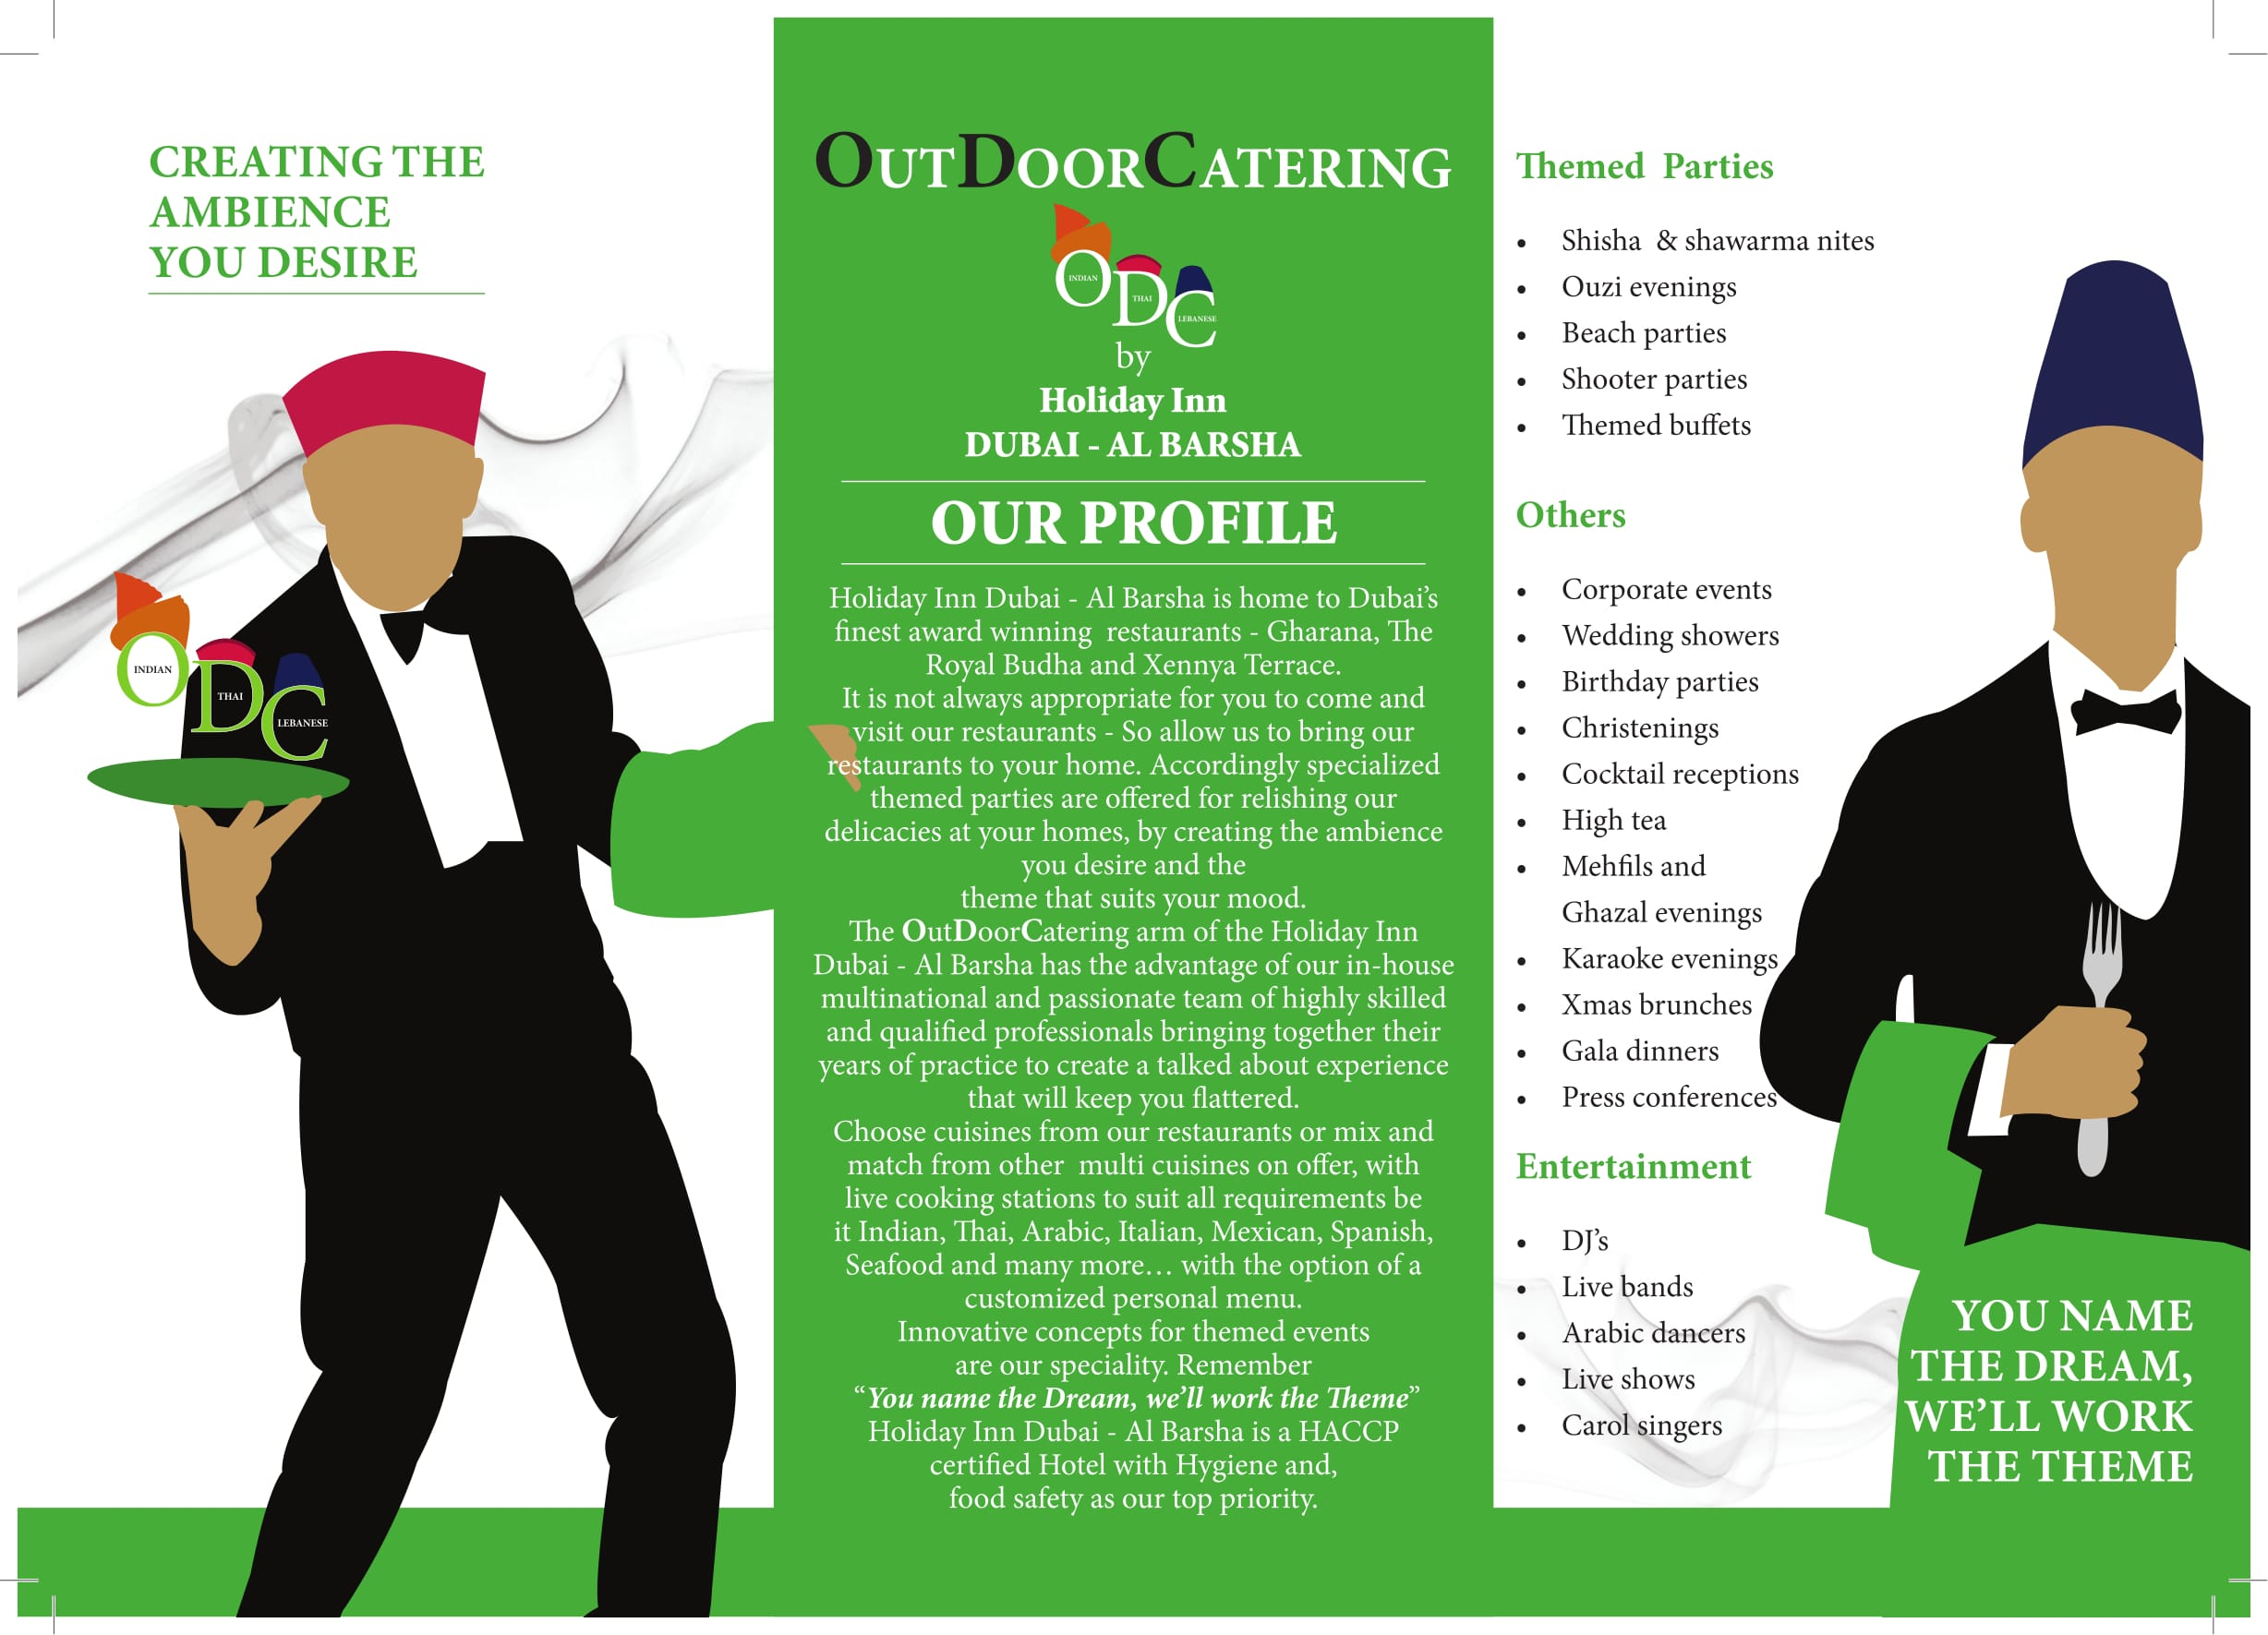 Professional Outdoor Caterers